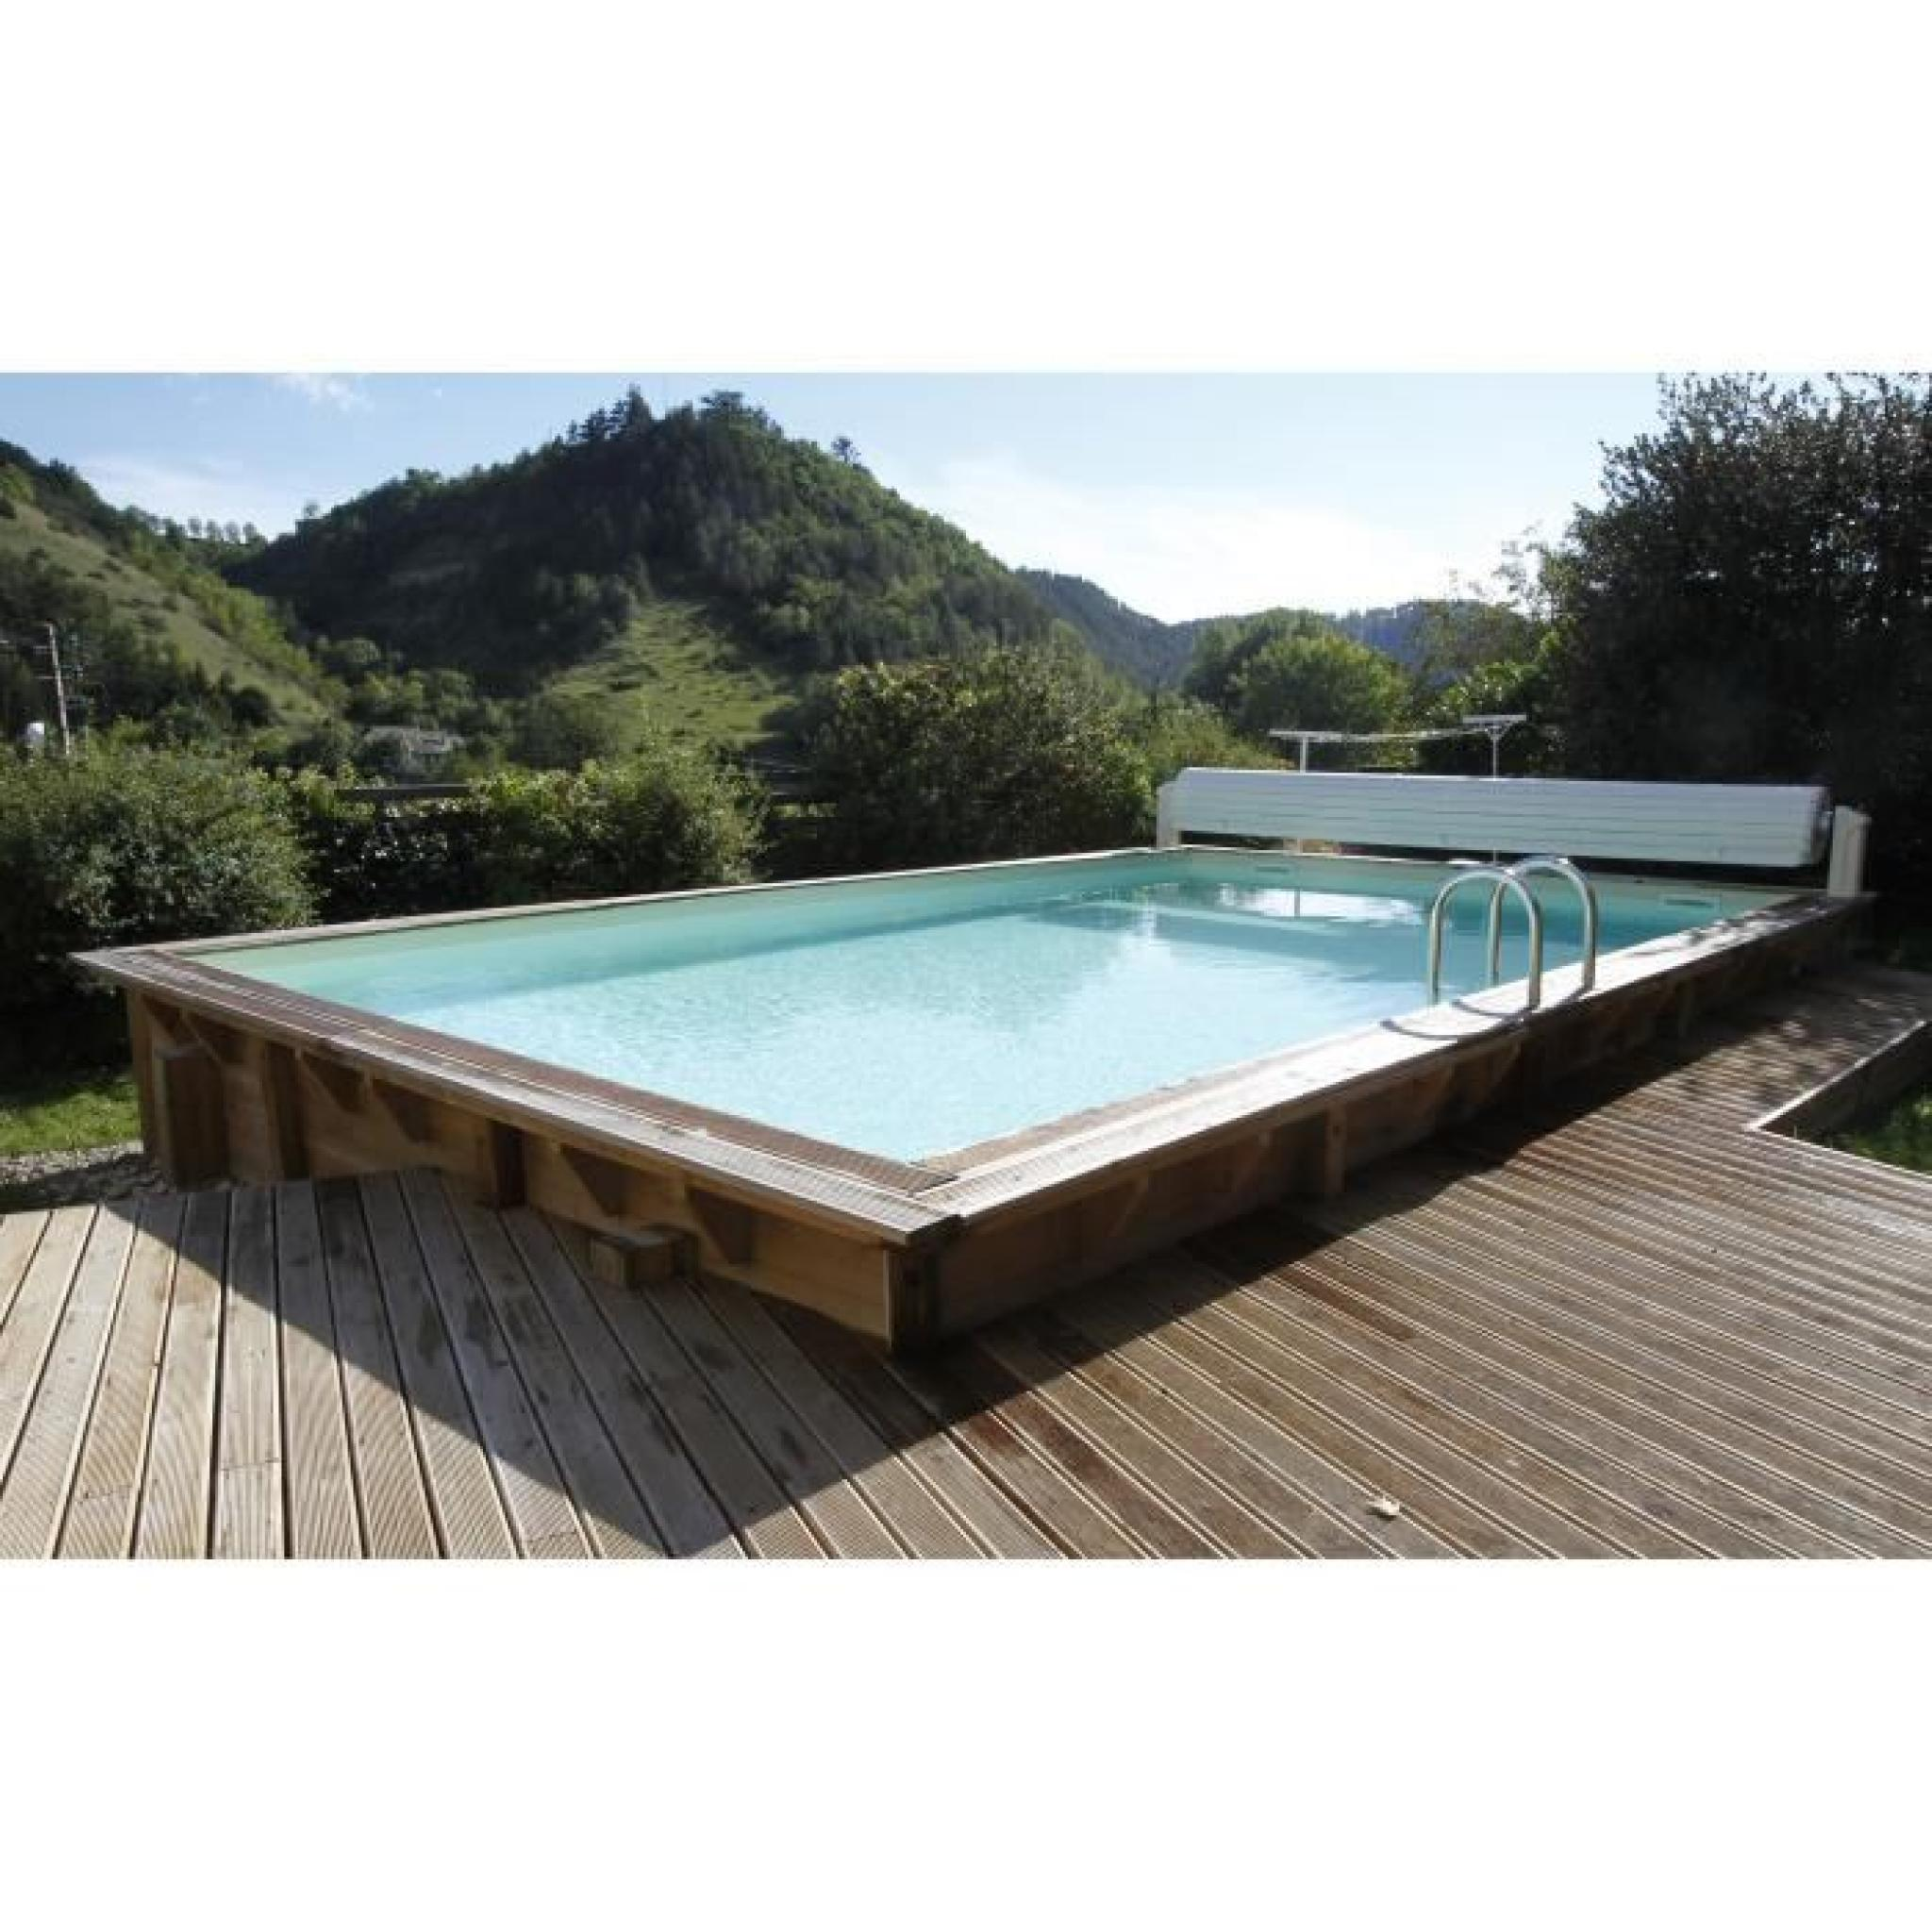 ubbink piscine octogonale en bois lin a 350x650xh140 cm liner sable achat vente piscine en. Black Bedroom Furniture Sets. Home Design Ideas